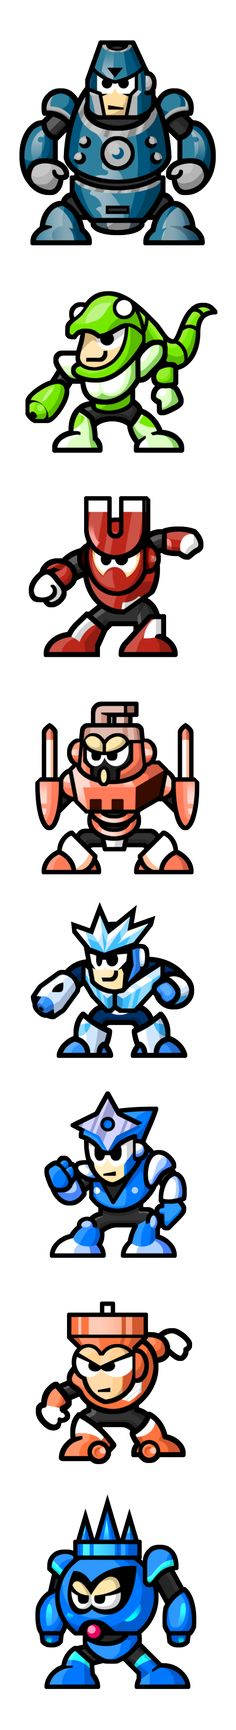 MegaMan 'Sprites'-Bosses of 3 by WaneBlade.deviantart.com on @DeviantArt